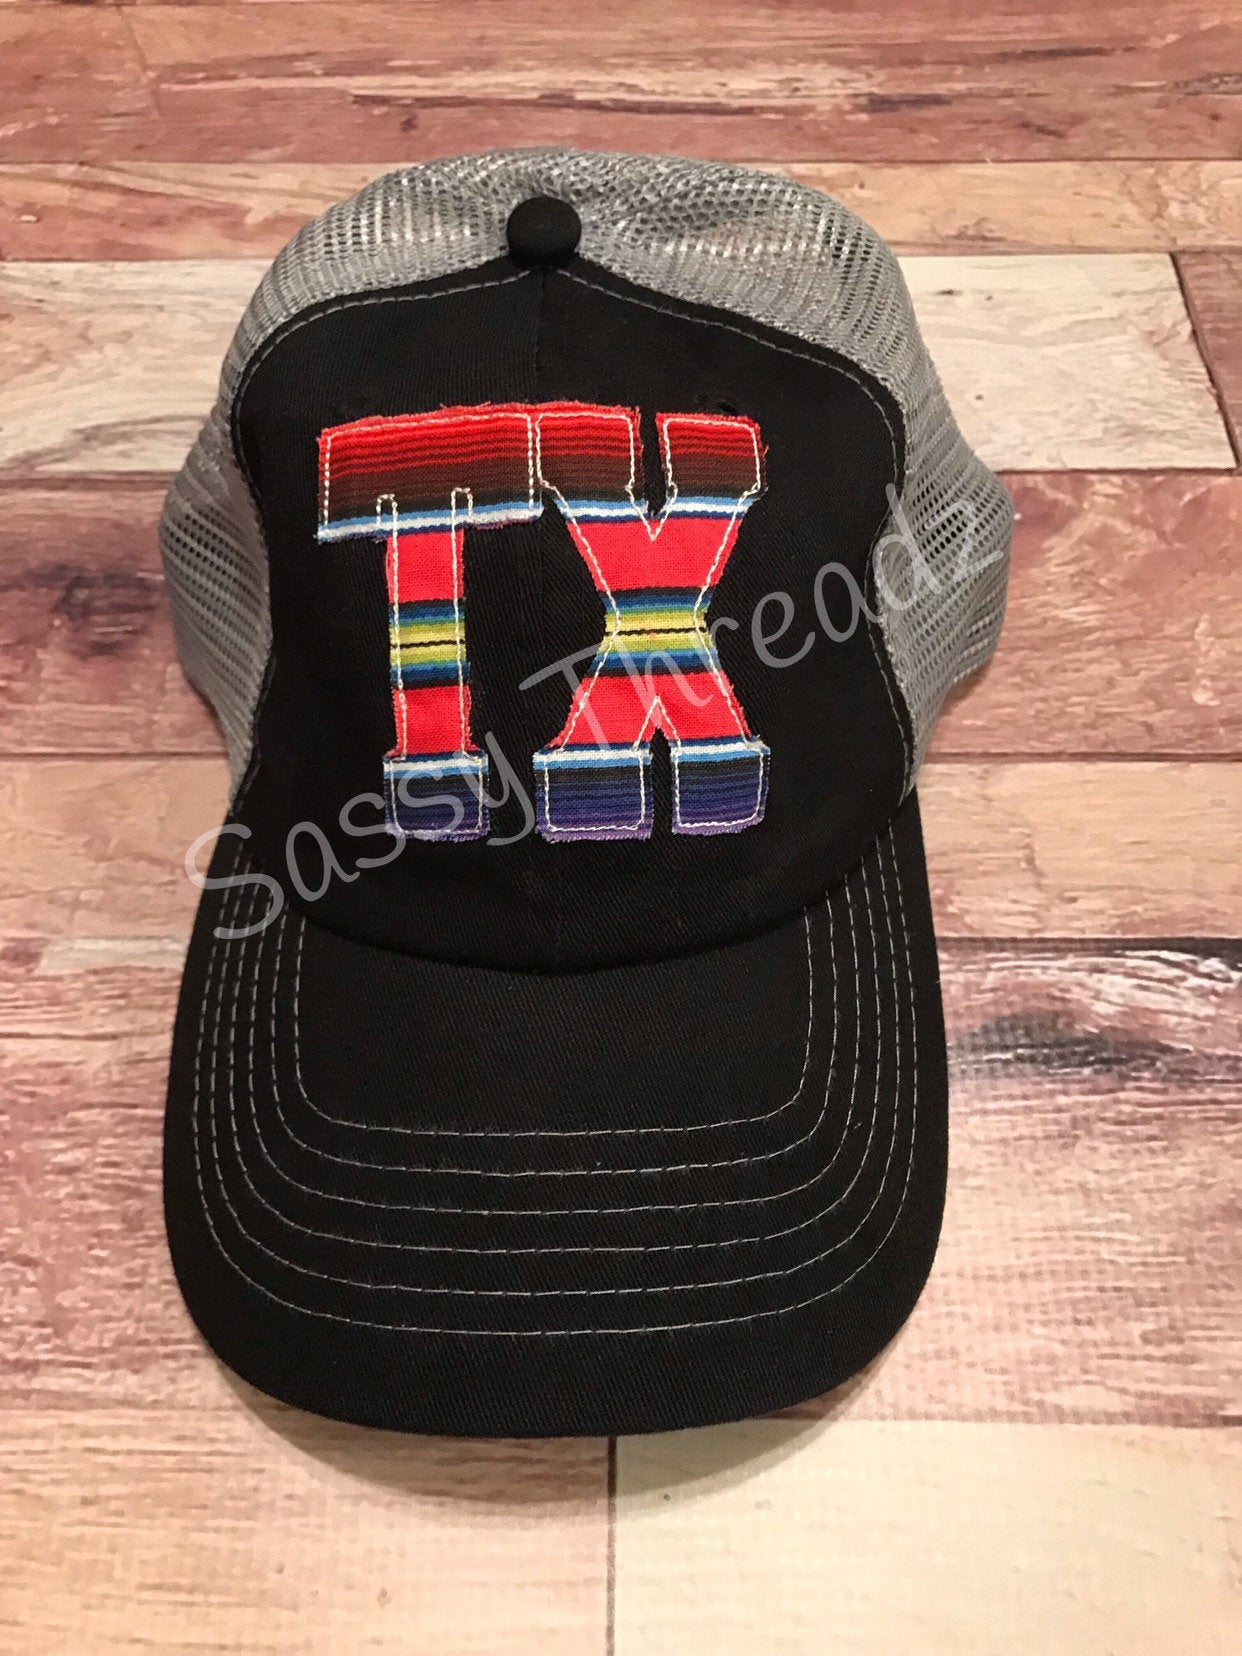 Serape Texas Fabric Sewn Applique Hat